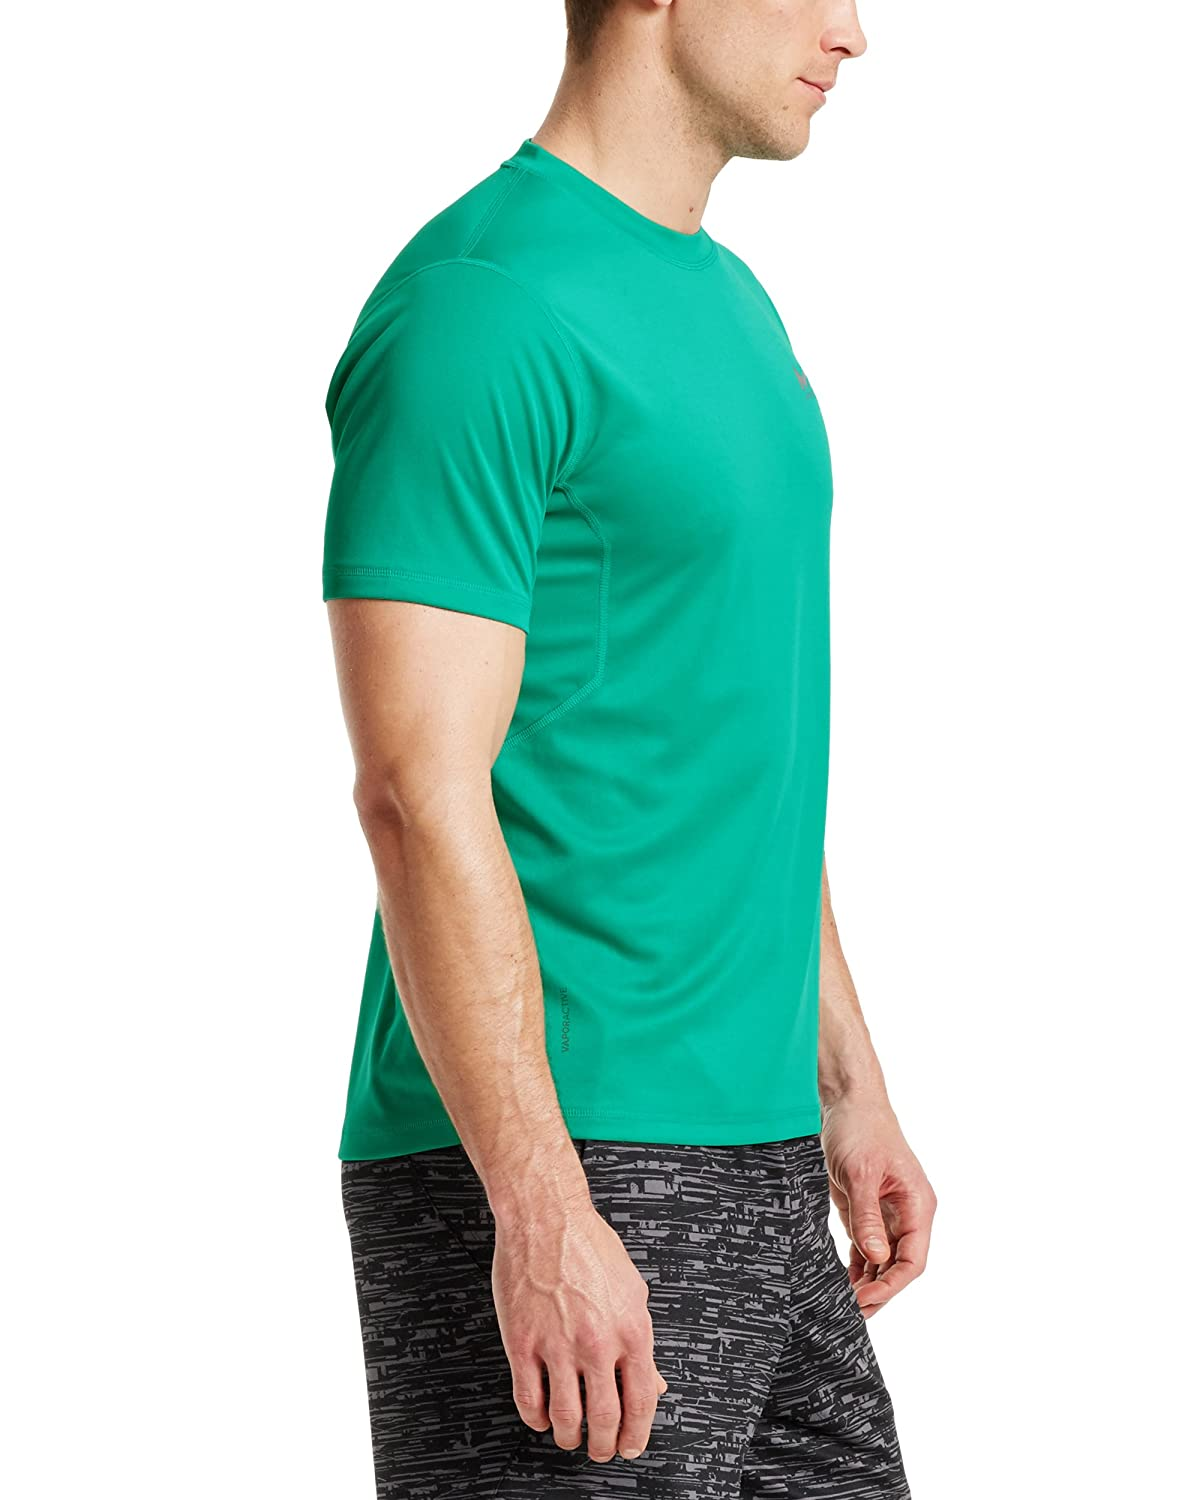 5ccea08c397 Mission Men's VaporActive Alpha Short Sleeve Athletic Shirt